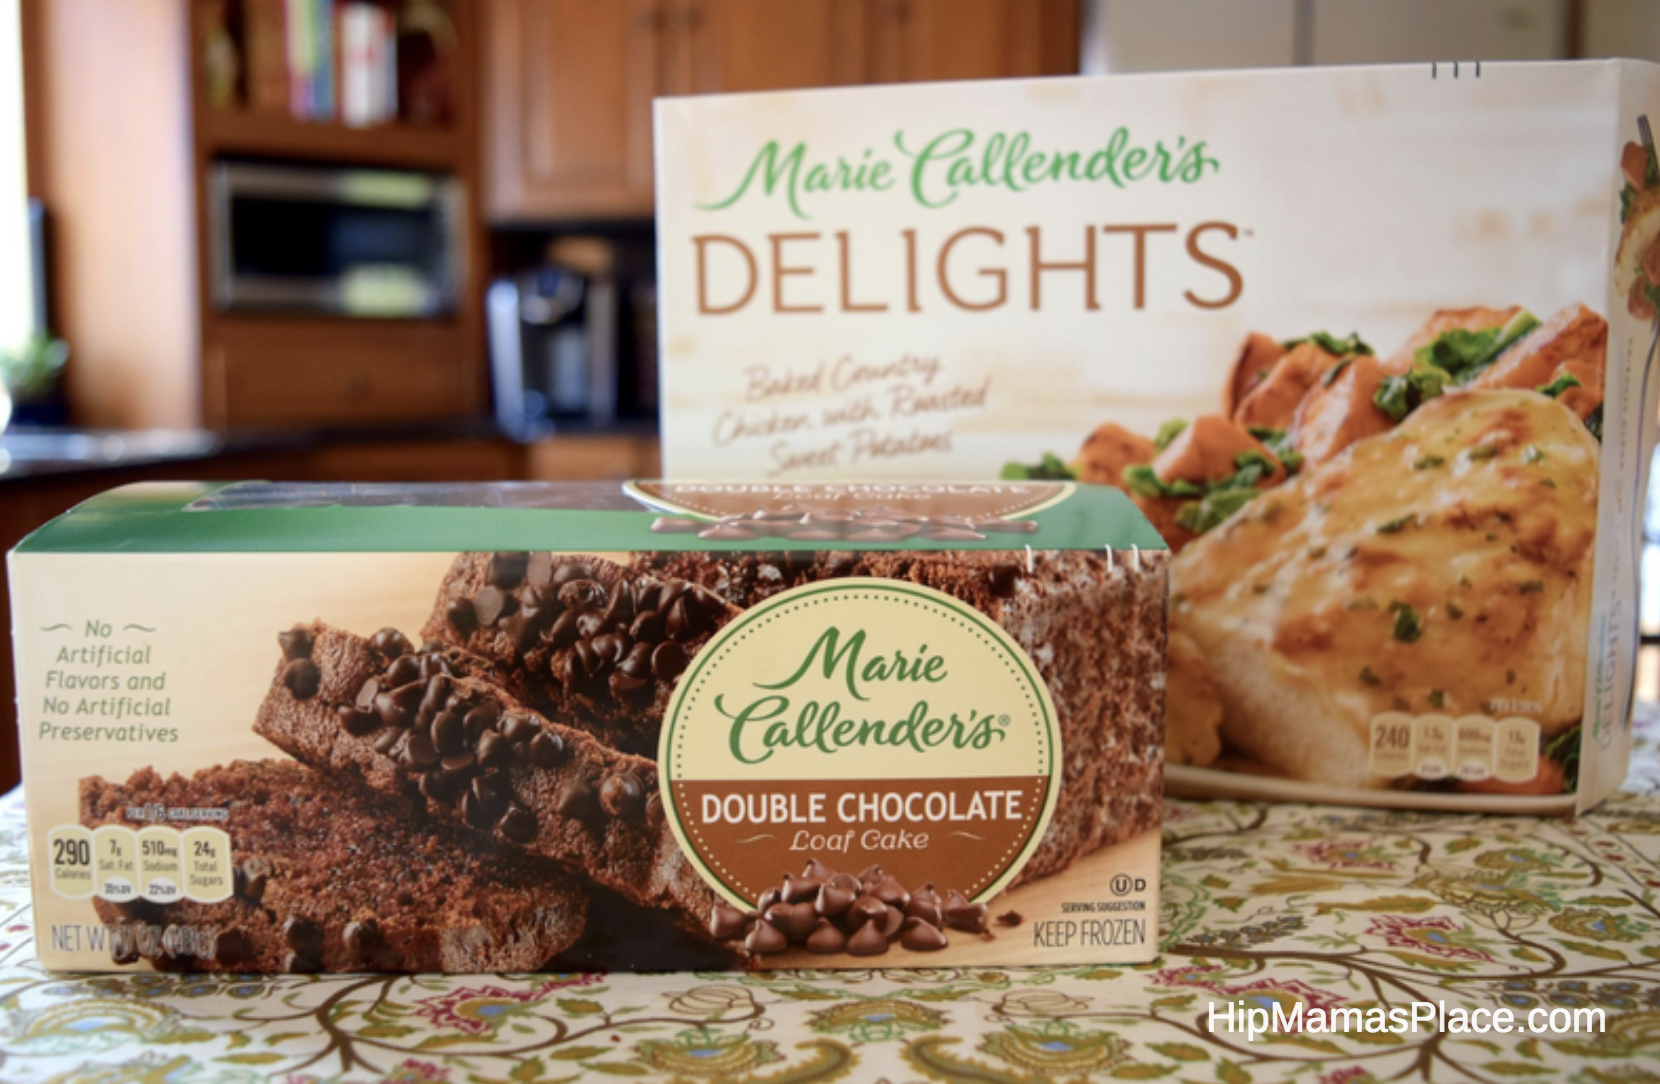 Recently, we've been loving the Marie Callender's Delights frozen dinners featuring many of our favorite comfort food favorites like the Balsamic Glazed Chicken with Harvest Vegetables, Baked Turkey Meatballs in a Crushed Tomato Basil Sauce and many more!